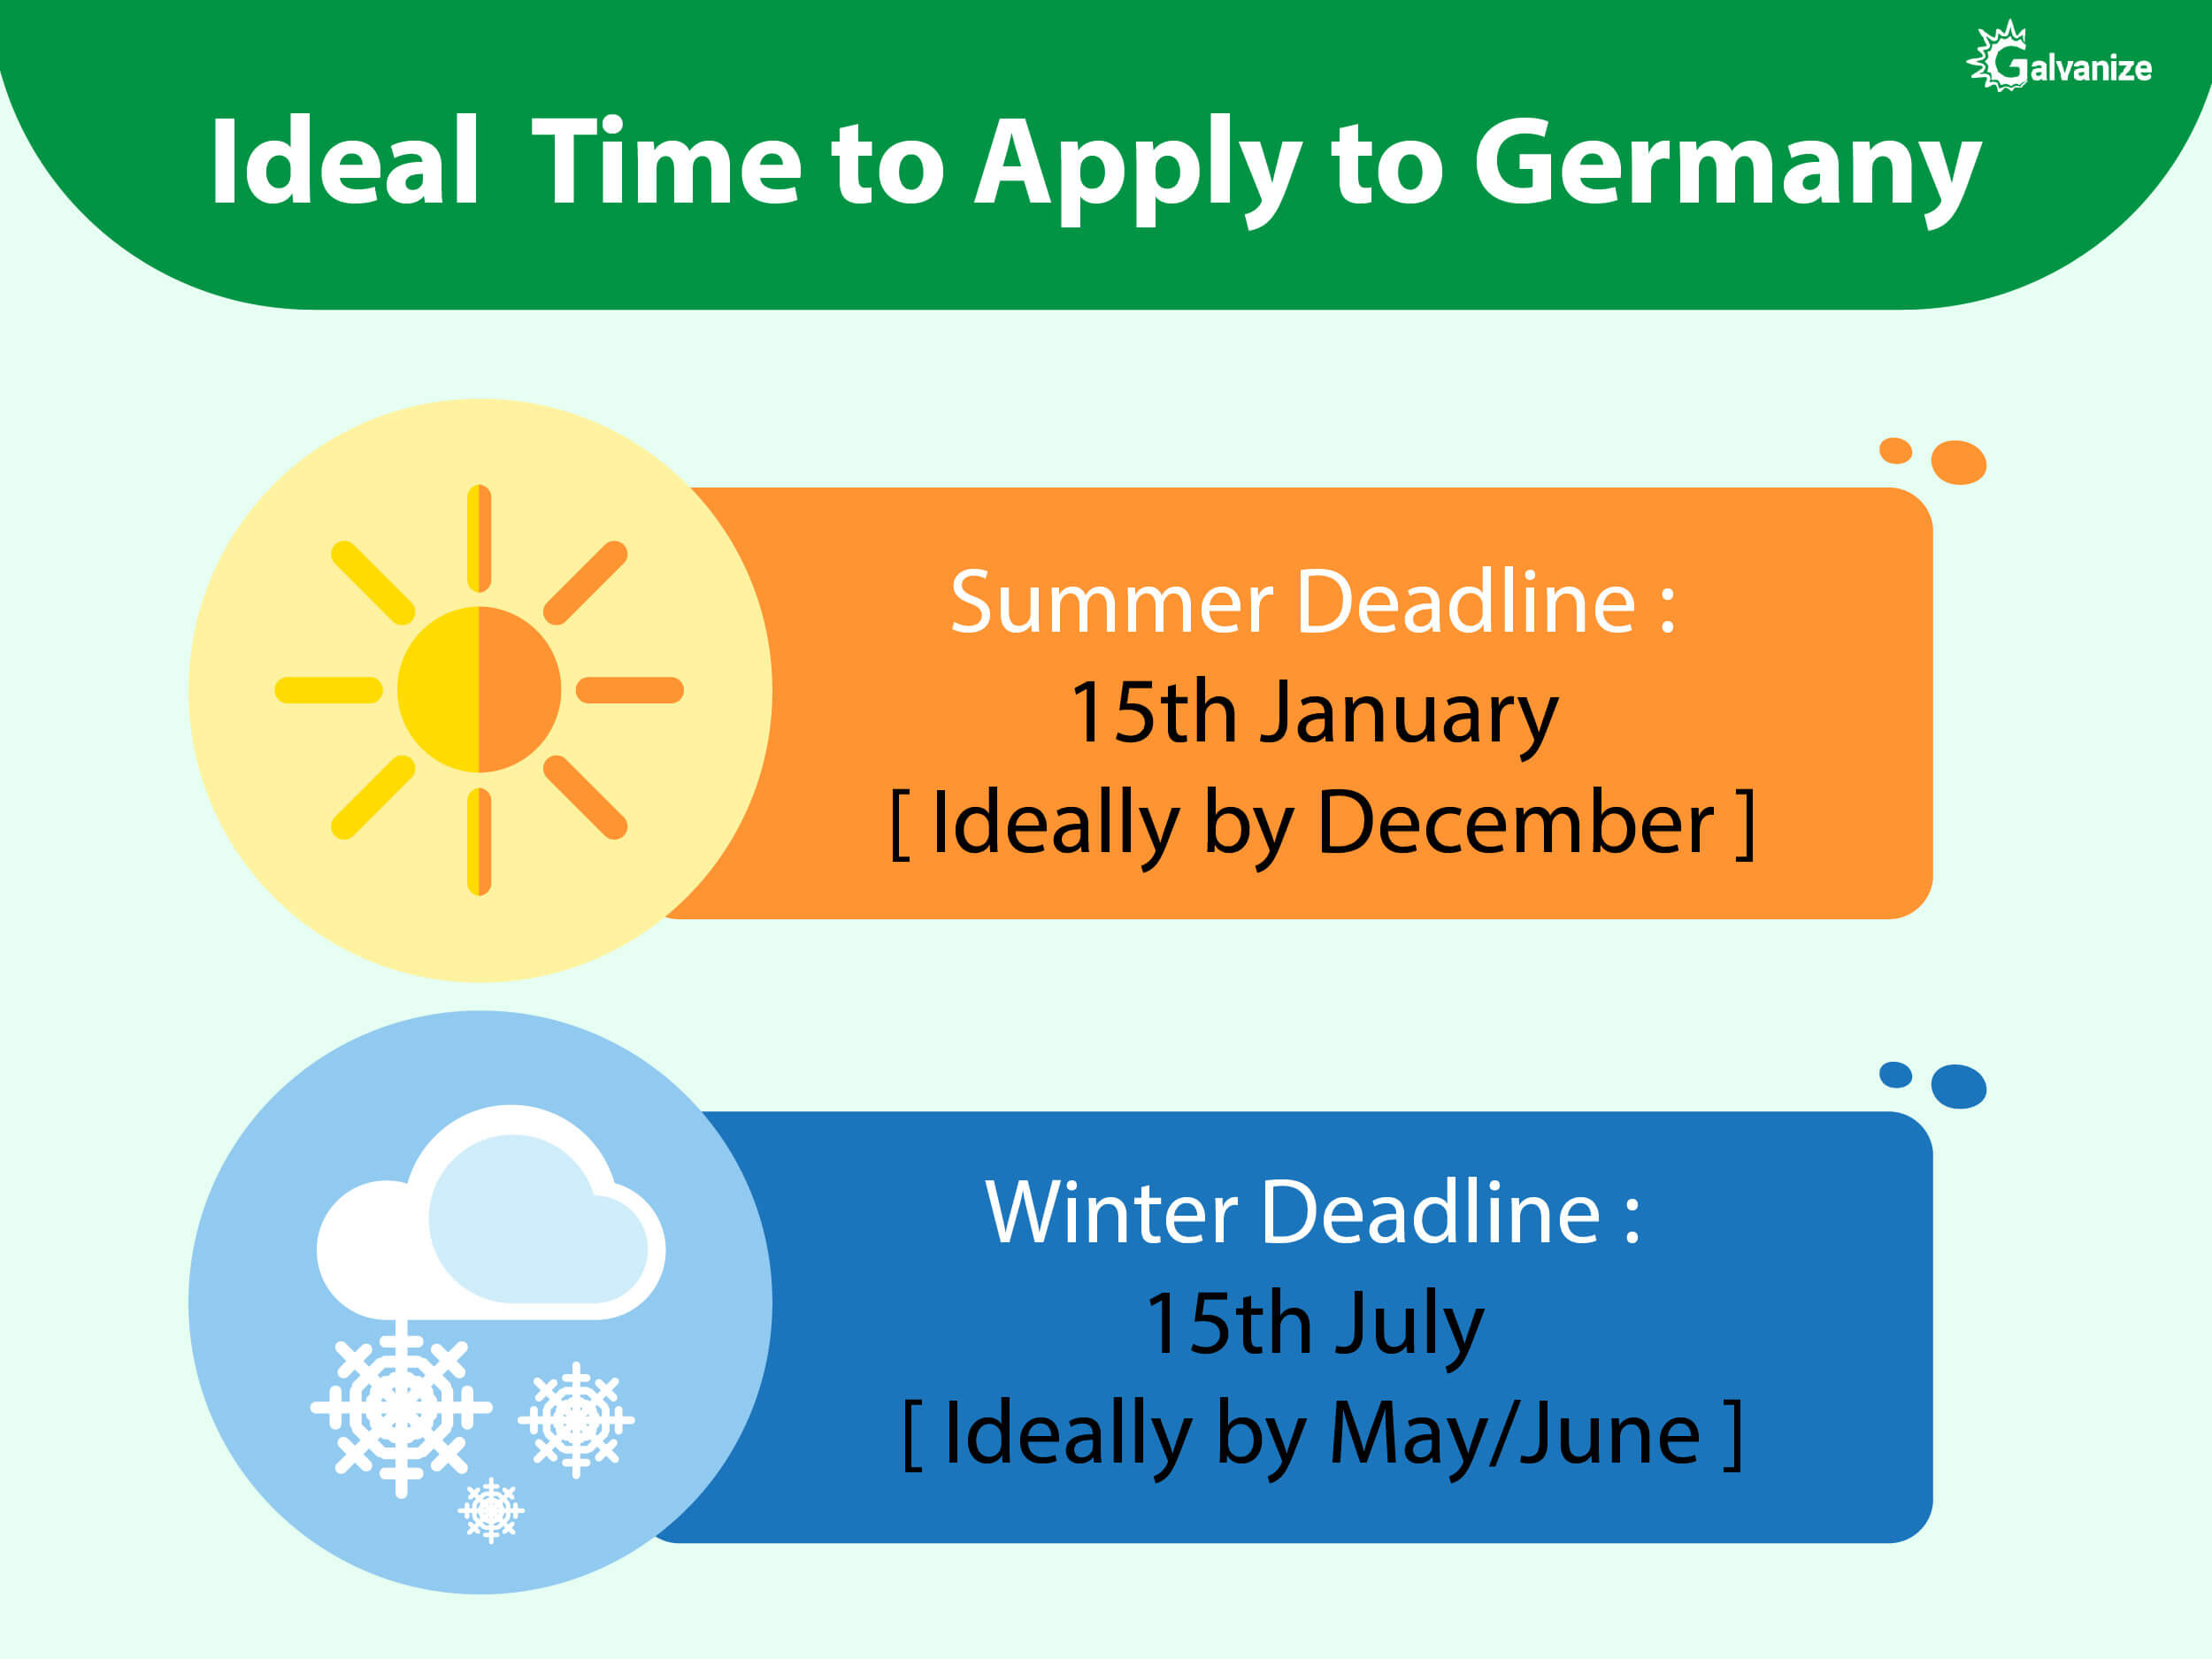 Ideal Time to apply to german universities | Study in Germany